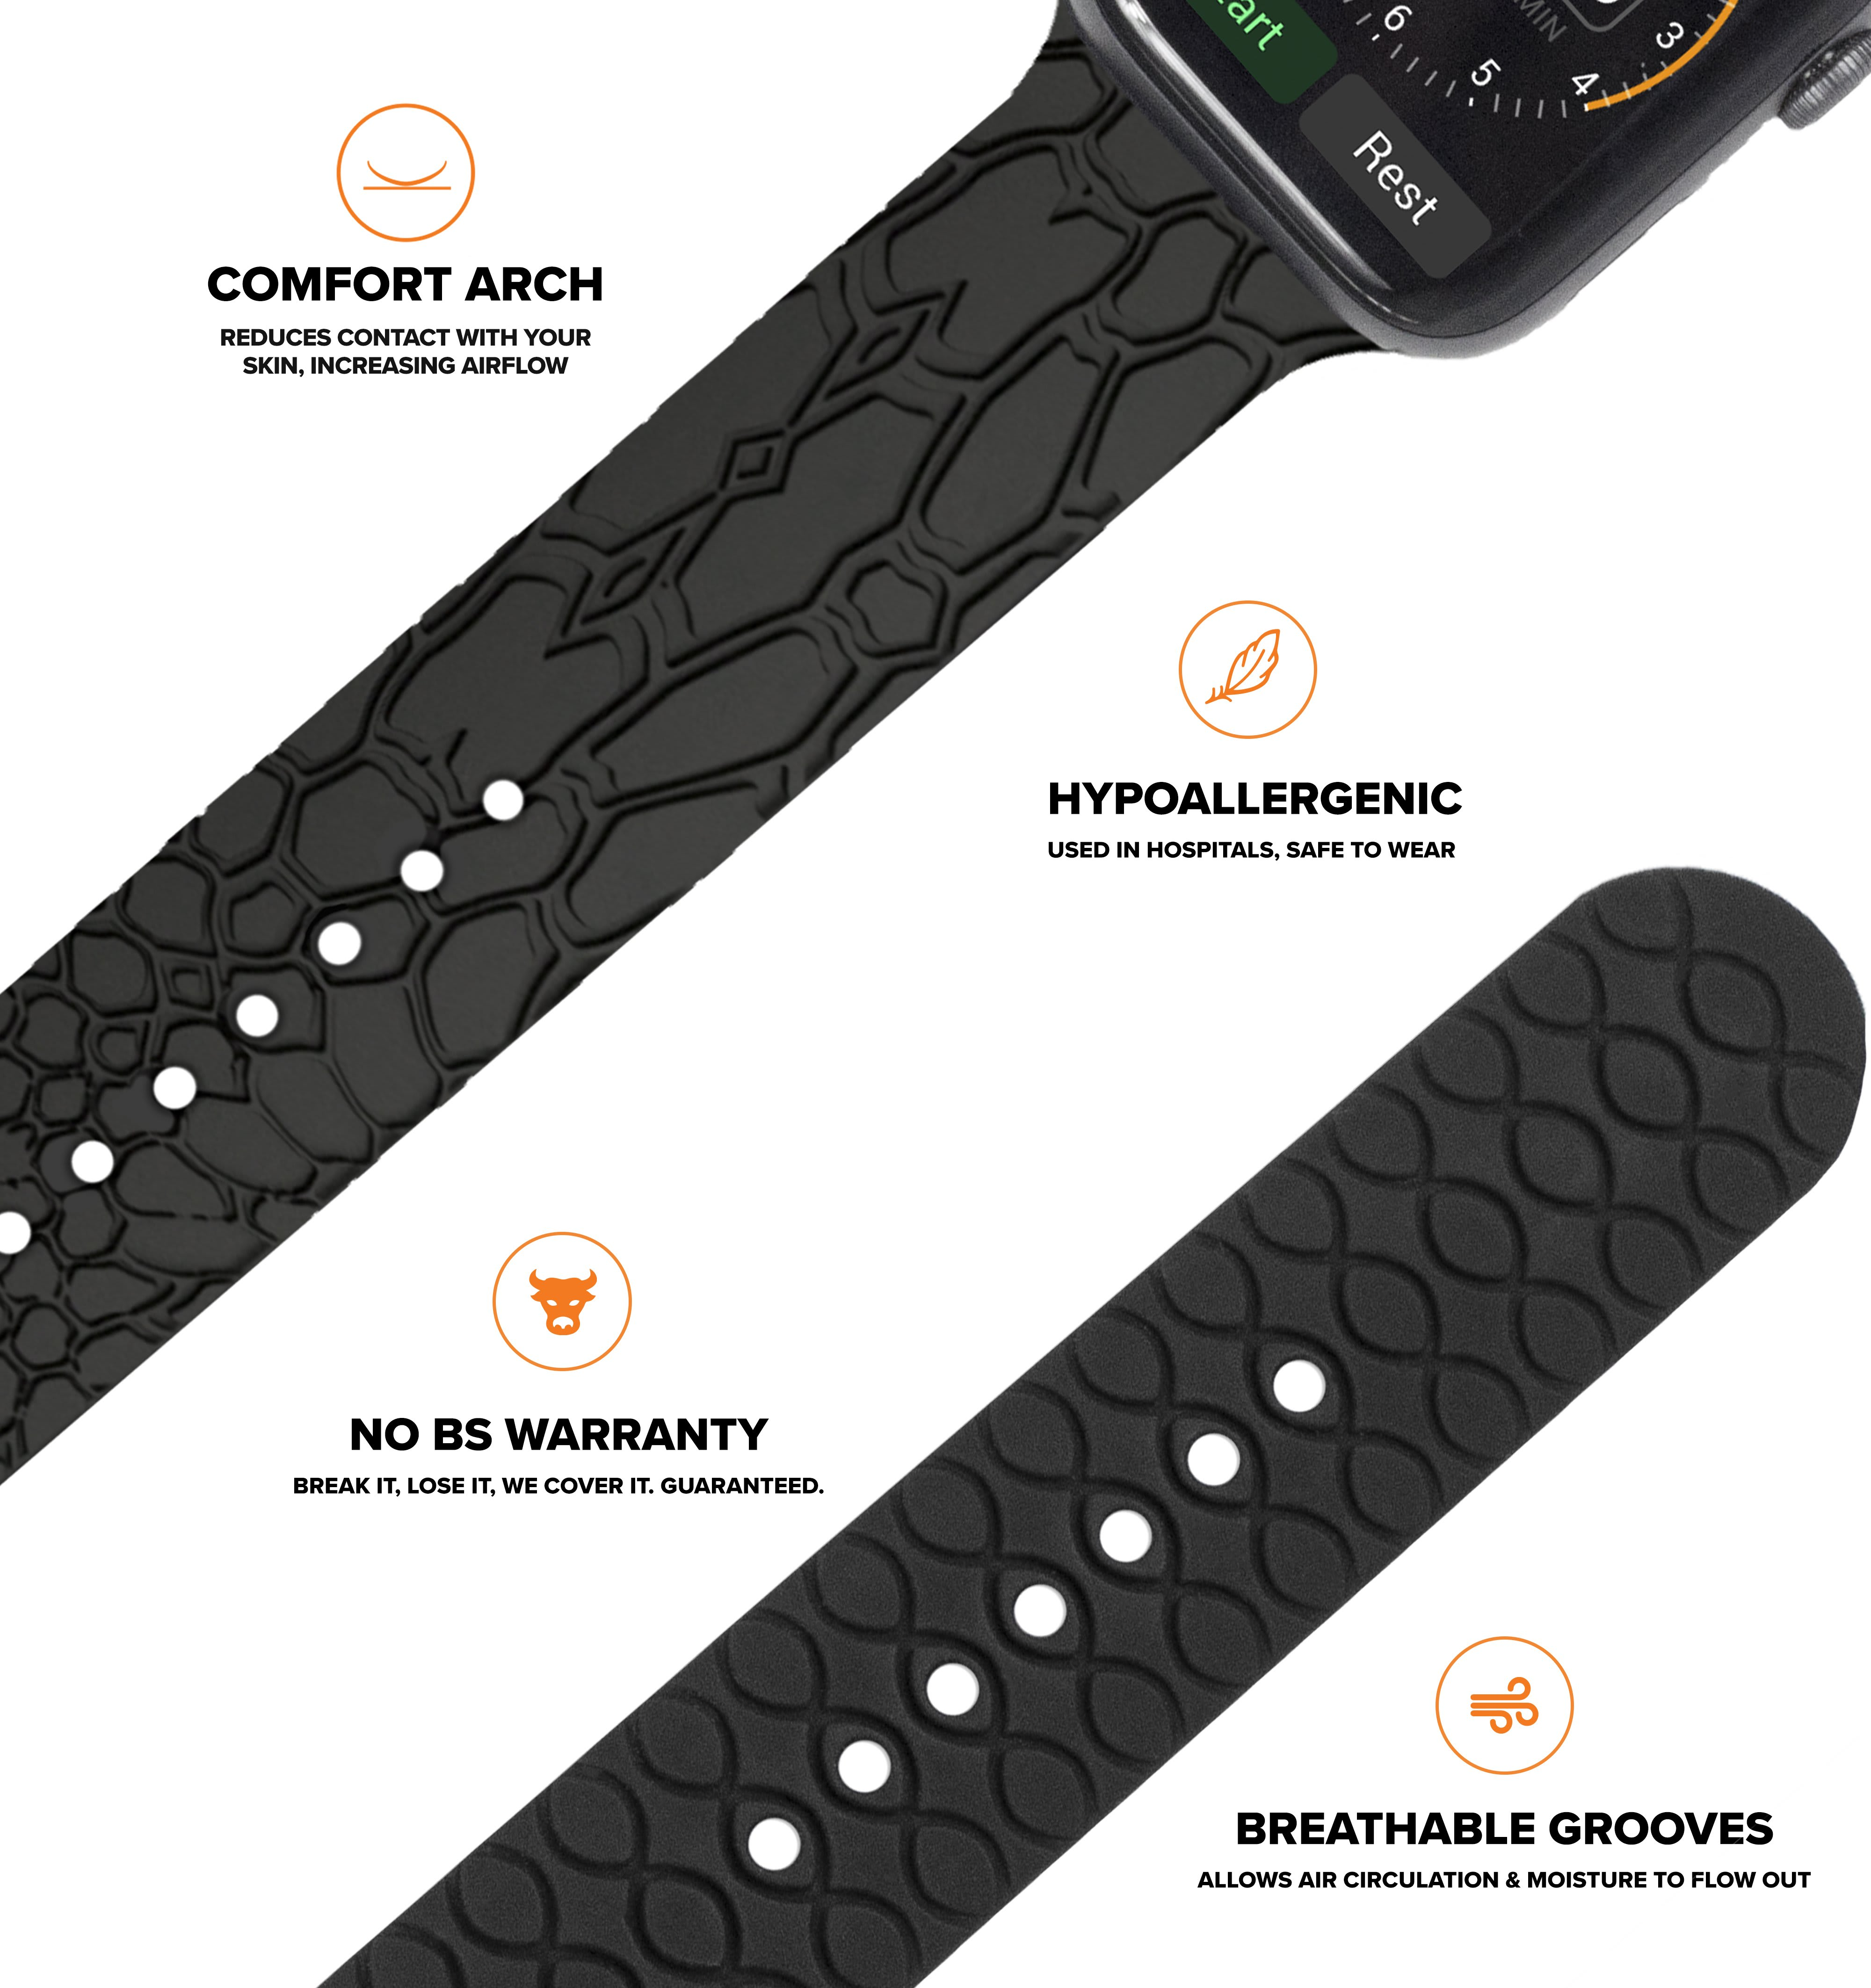 The Most Comfortable Apple Watch Band